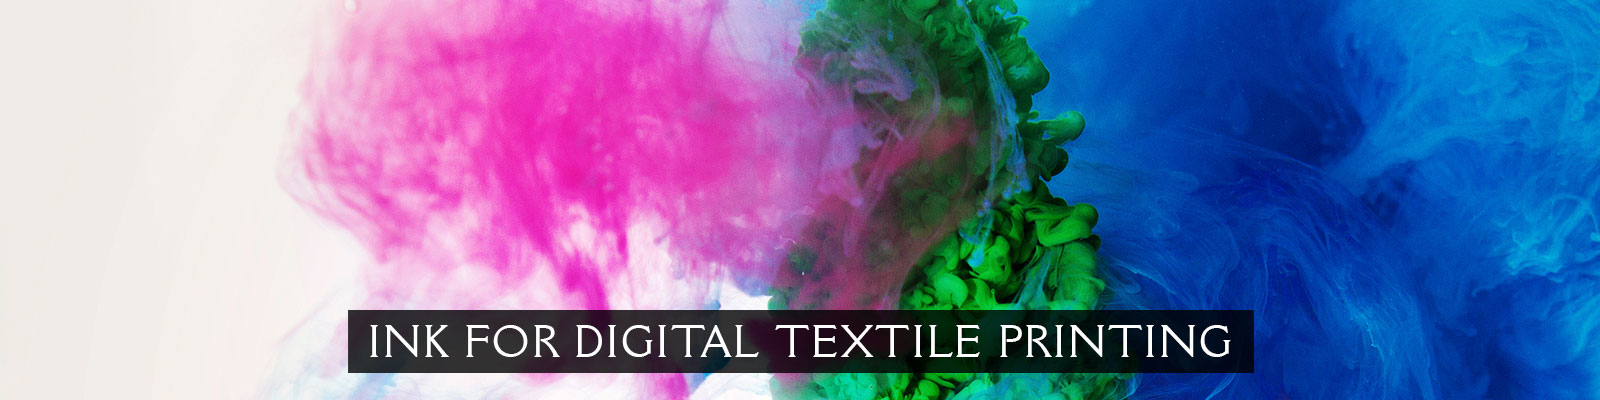 INK FOR DIGITAL TEXTILE PRINTING